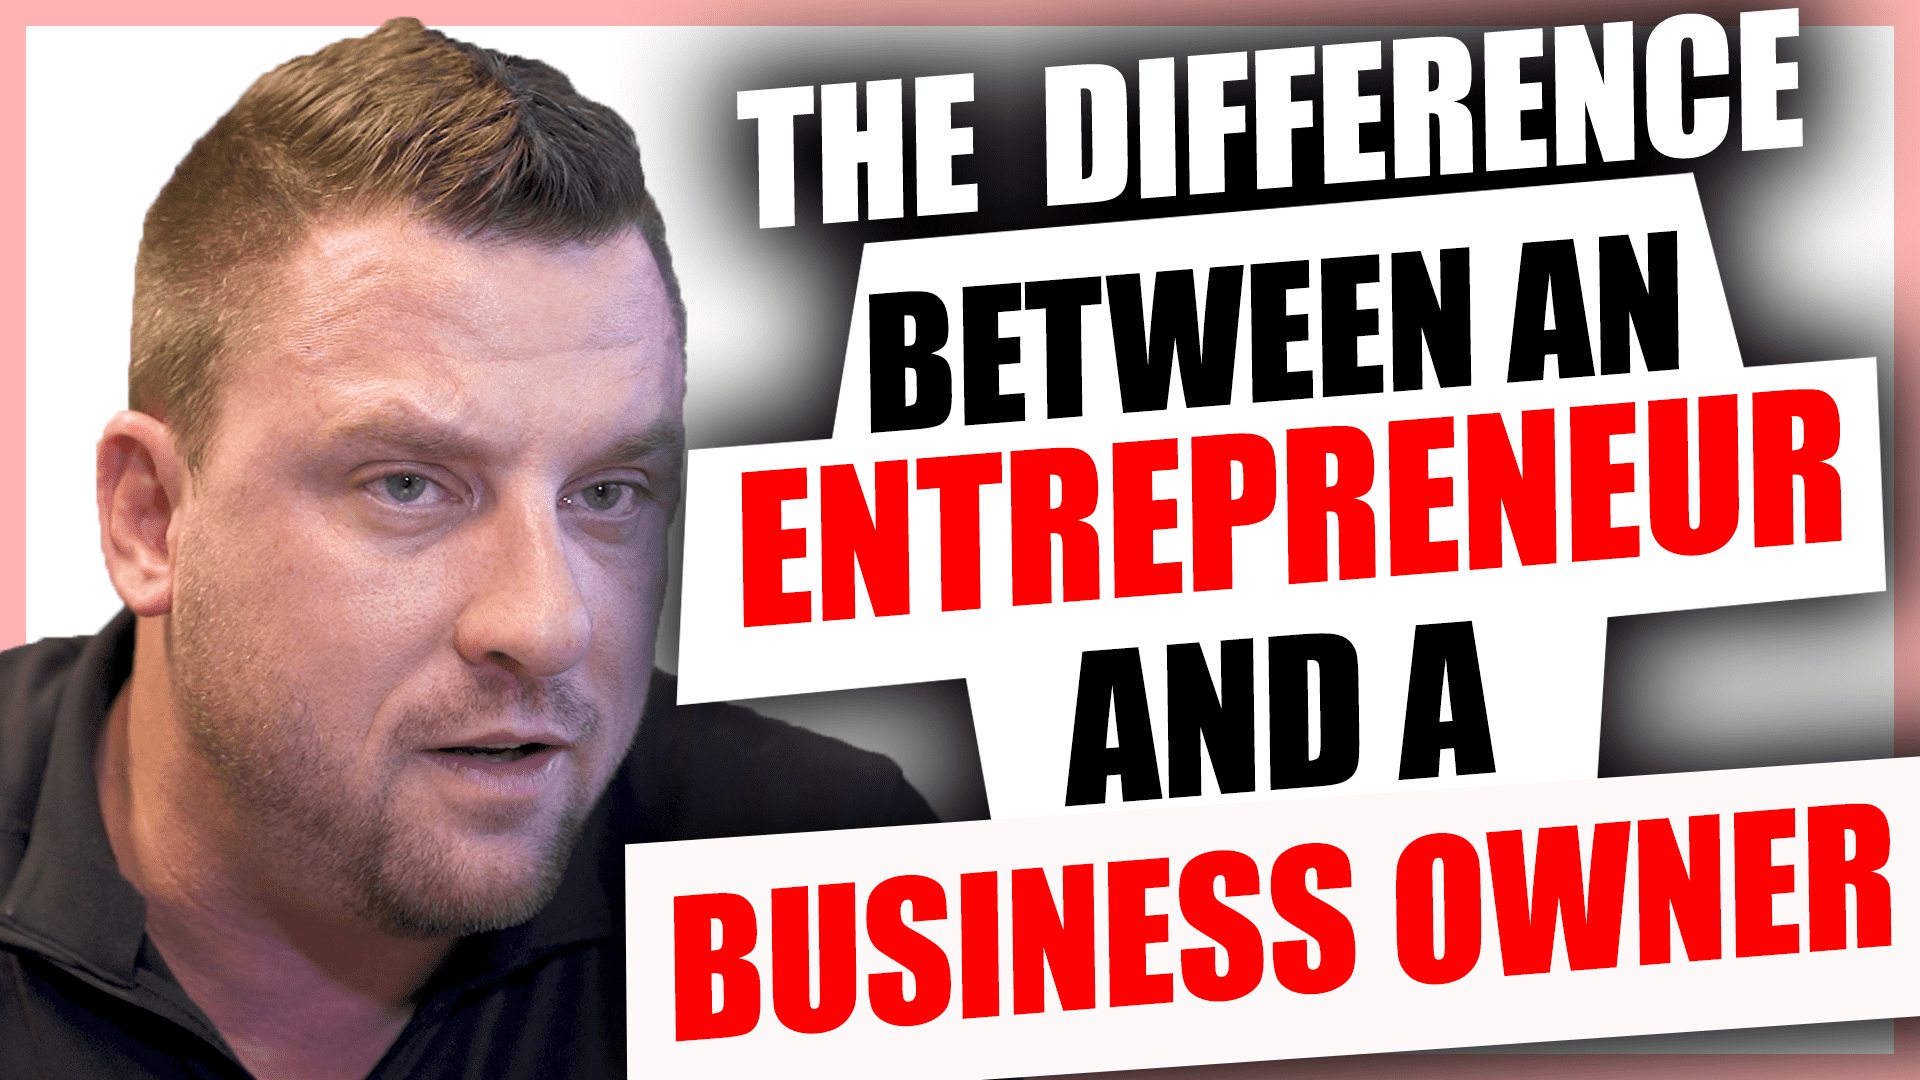 Difference between entrepreneur and business owner